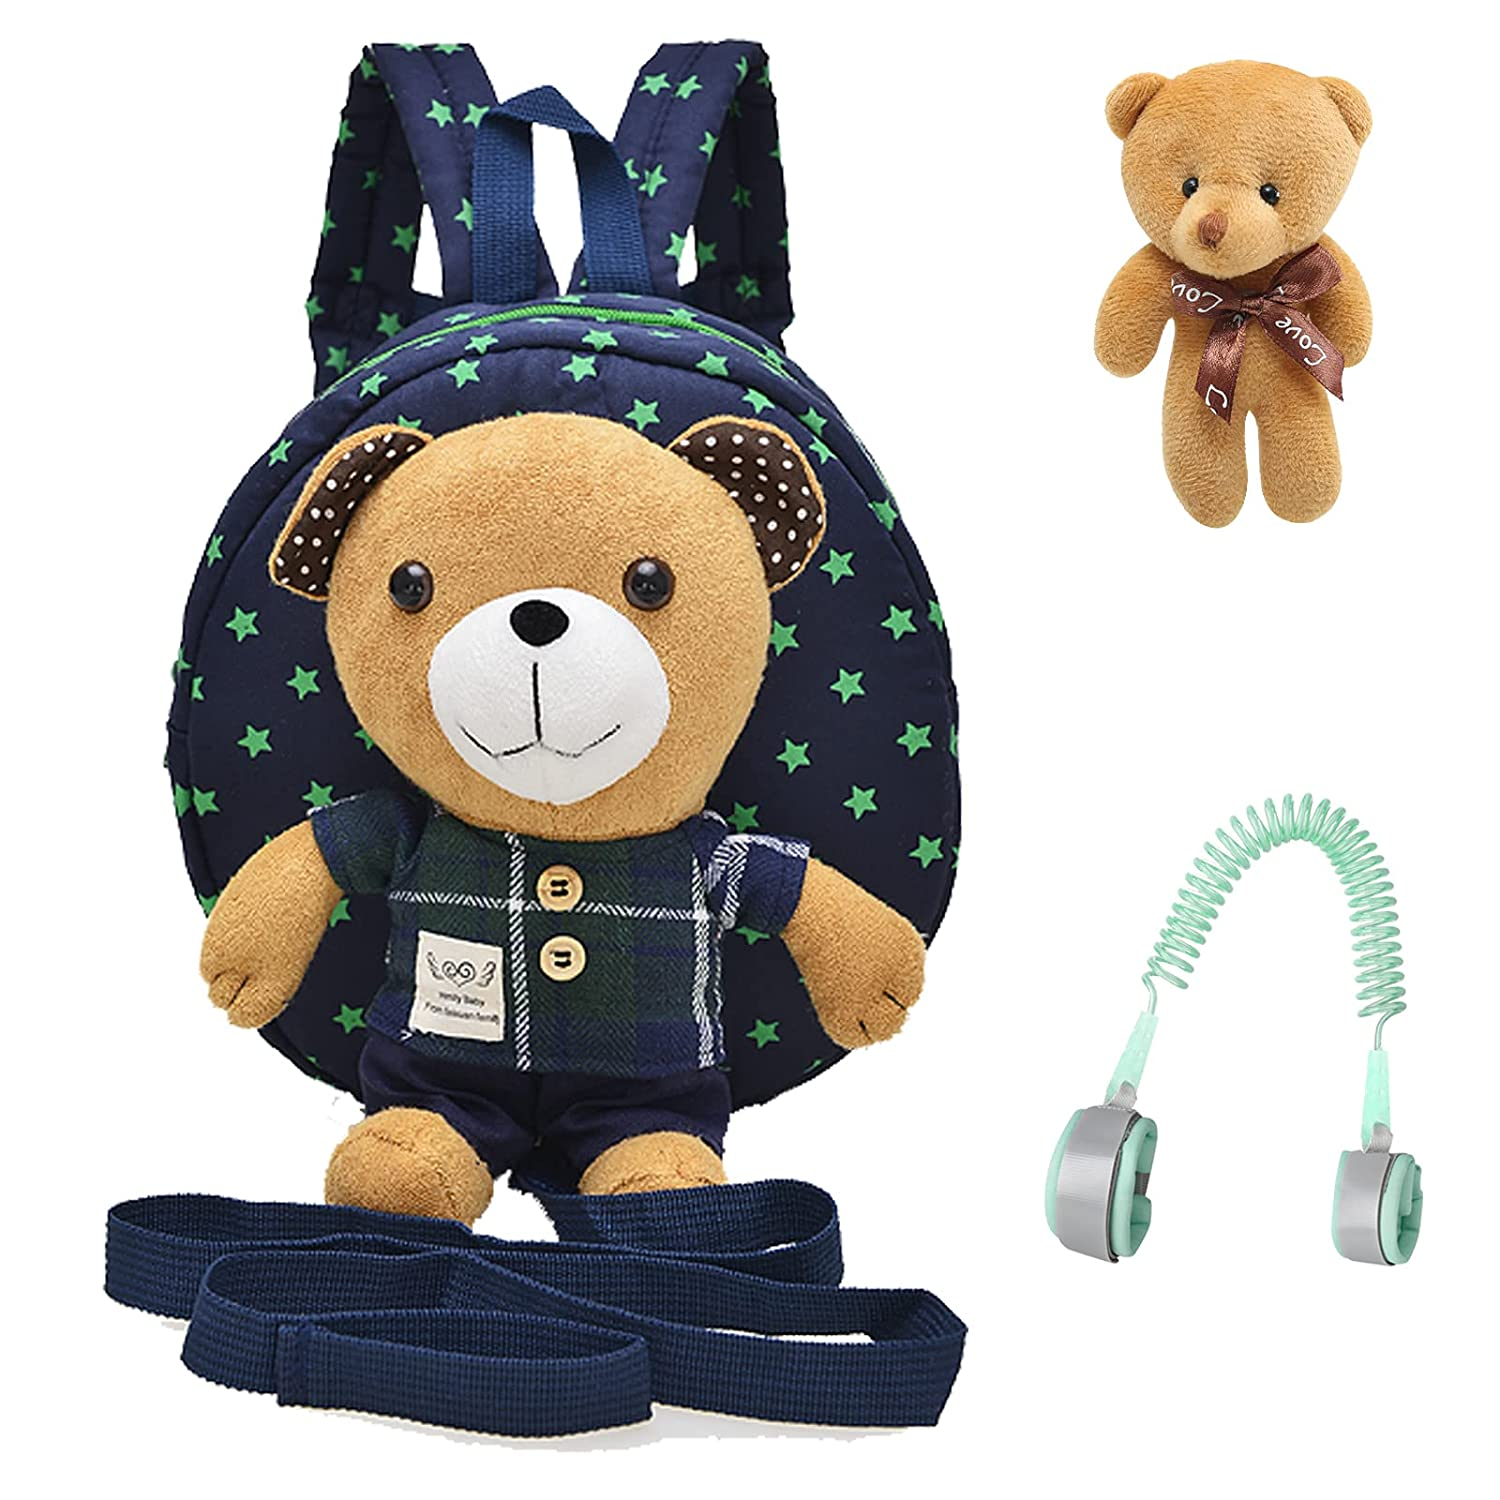 Blue Bear Toddler Mini Backpack with Leash,Children Kids Baby Harness Bookbag Safety Leash for Boys and Girls Age 1-3 Years Old